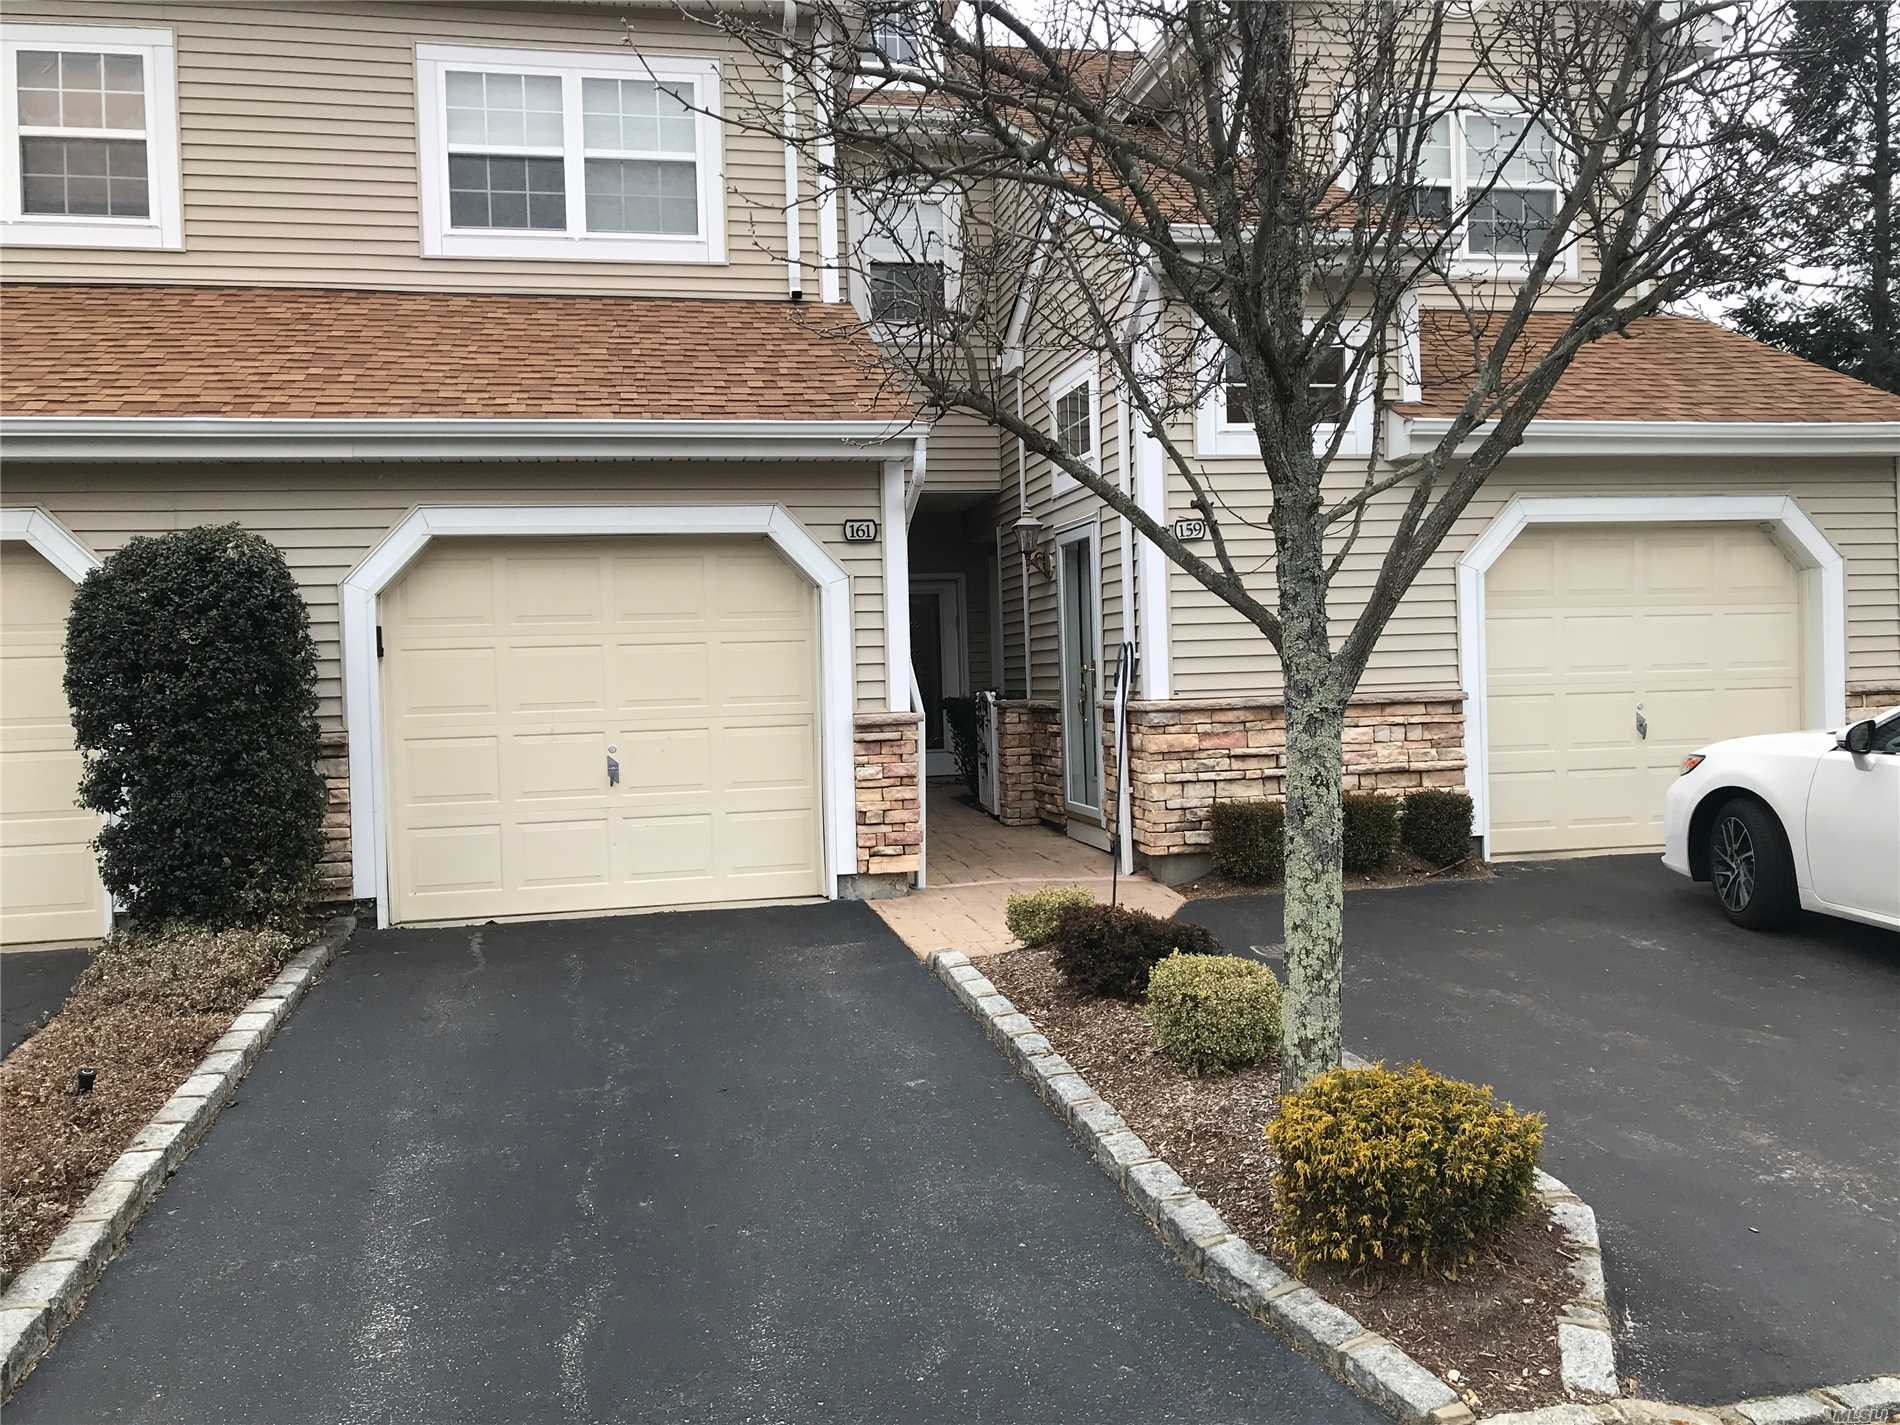 Sought After Lower Corner Unit W/The Most Natural Light , Bayberry Model Largest Main Level Unit. Desirable Location On Carriage Lane. No Steps Eat In Kitchen-Dinning Room-W/Sliders To Patios, Gas B.B.Q., Updated Bath W/Jacuzzi Walk In Closet Many Custom Features (Extra Side Garden) Come And Enjoy This Wonderful Safe Community